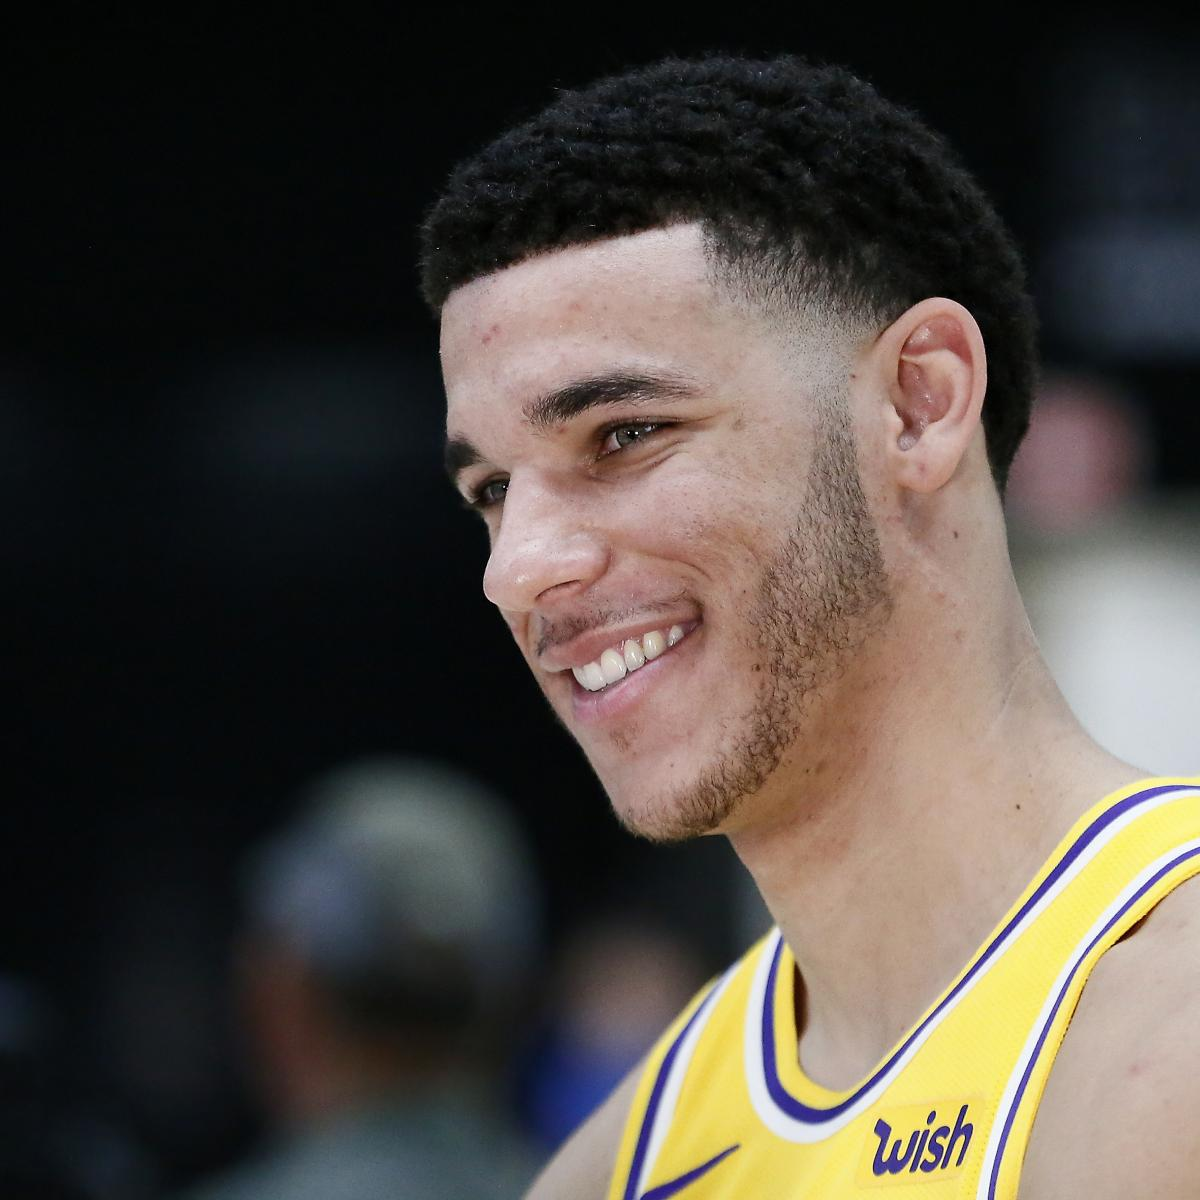 Lonzo Ball S Life With Daughter Zoey Featured On New Ball In The Family Bleacher Report Latest News Videos And Highlights